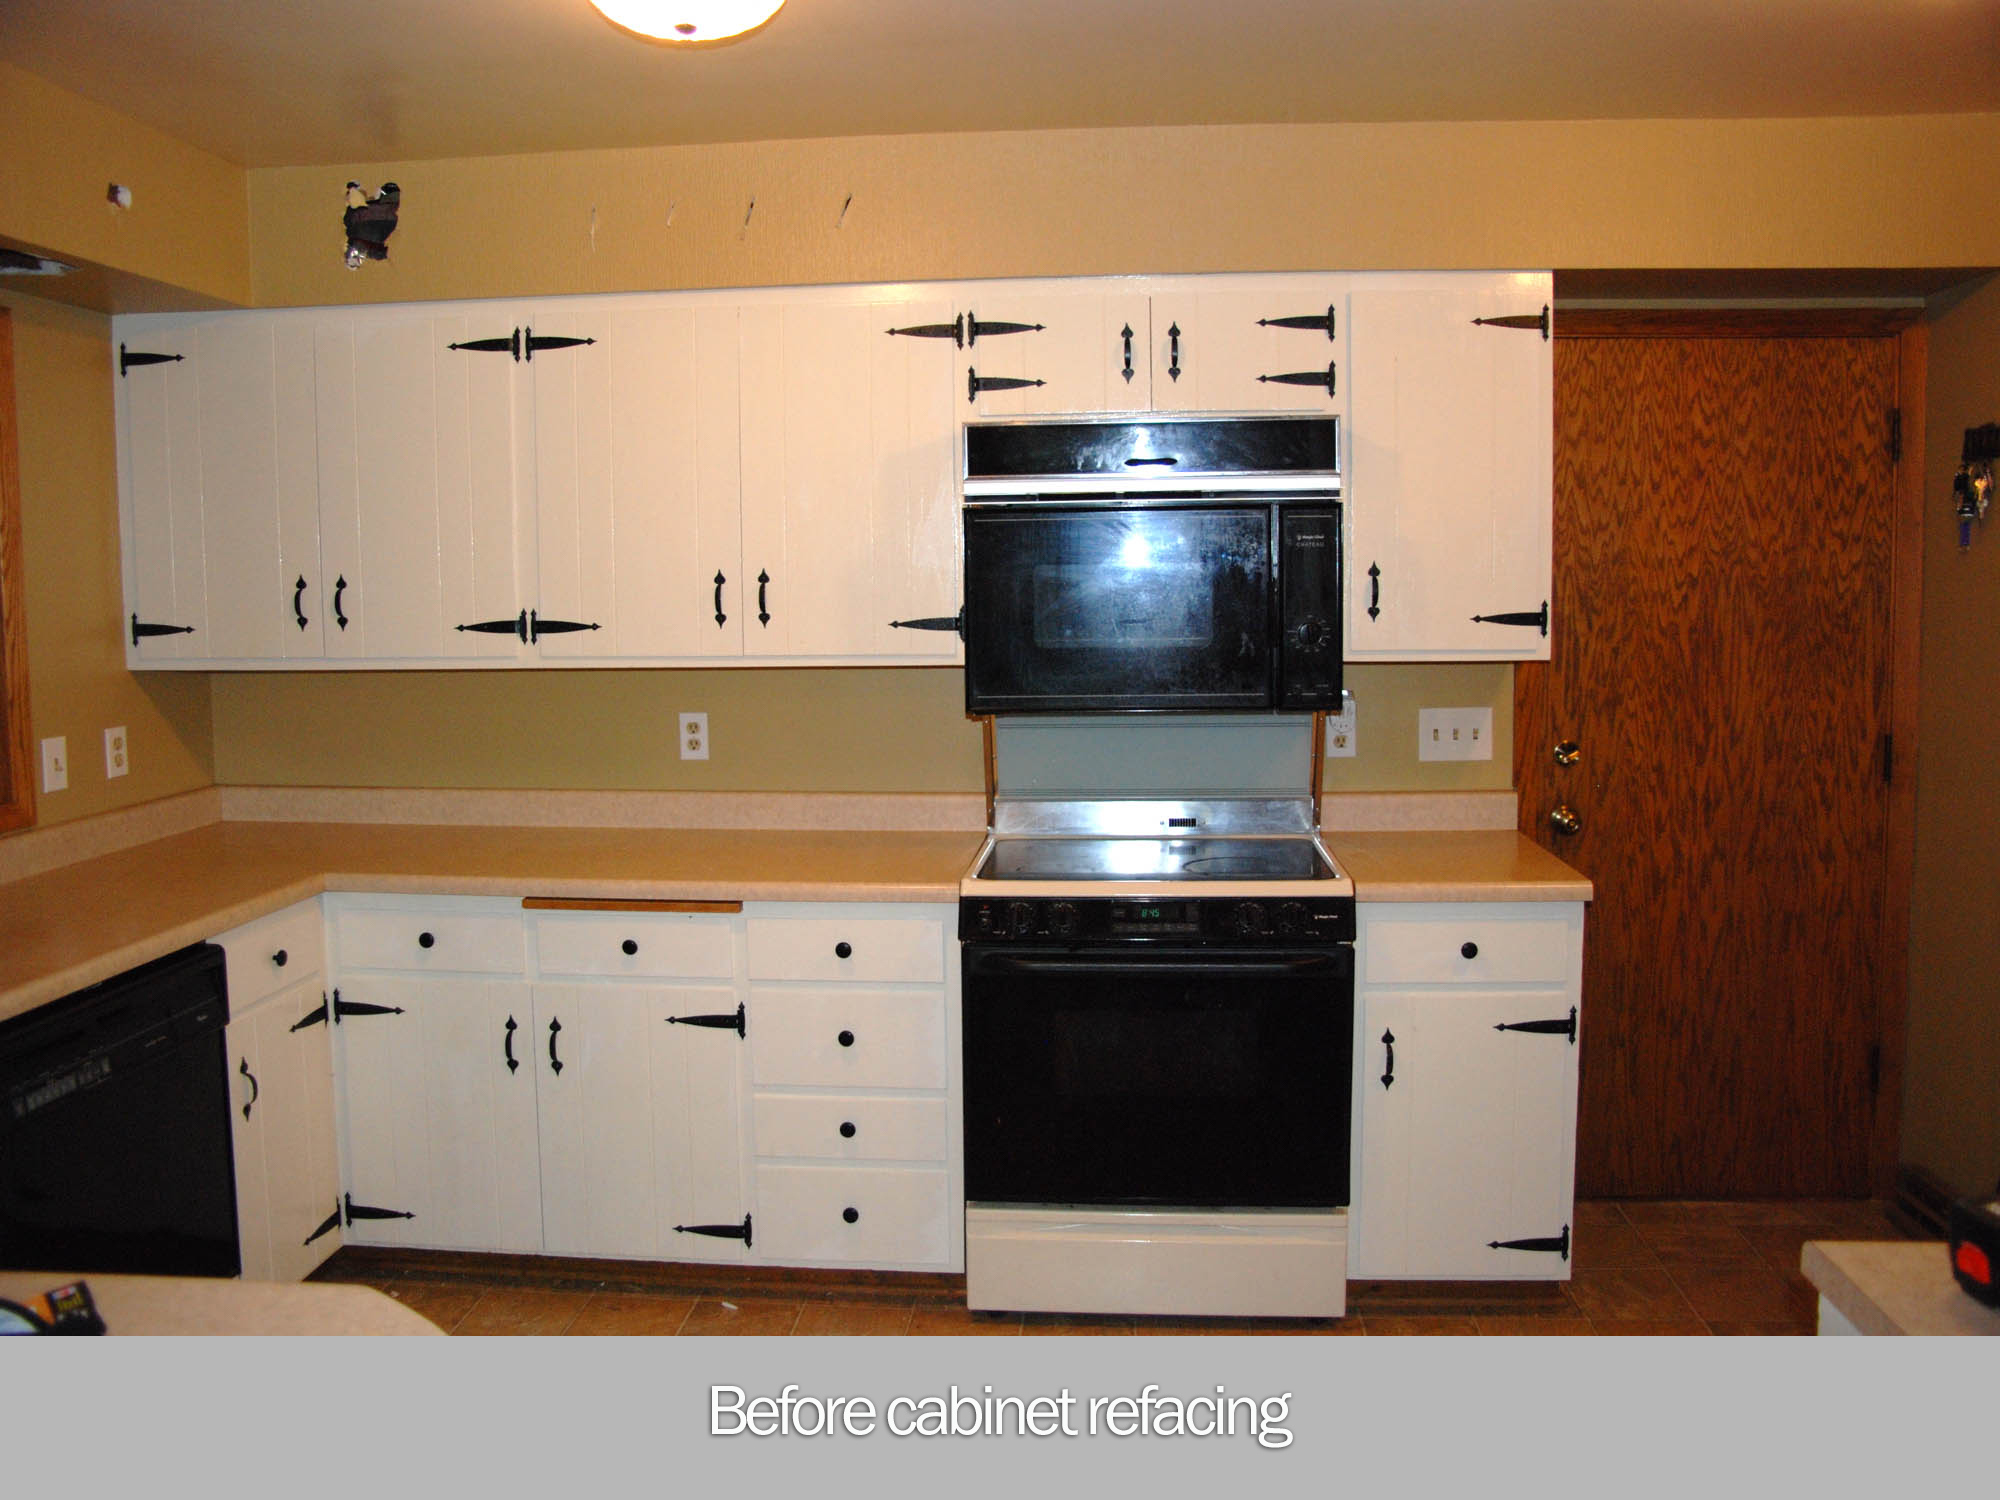 View The New Cabinets In This Refaced Kitchen